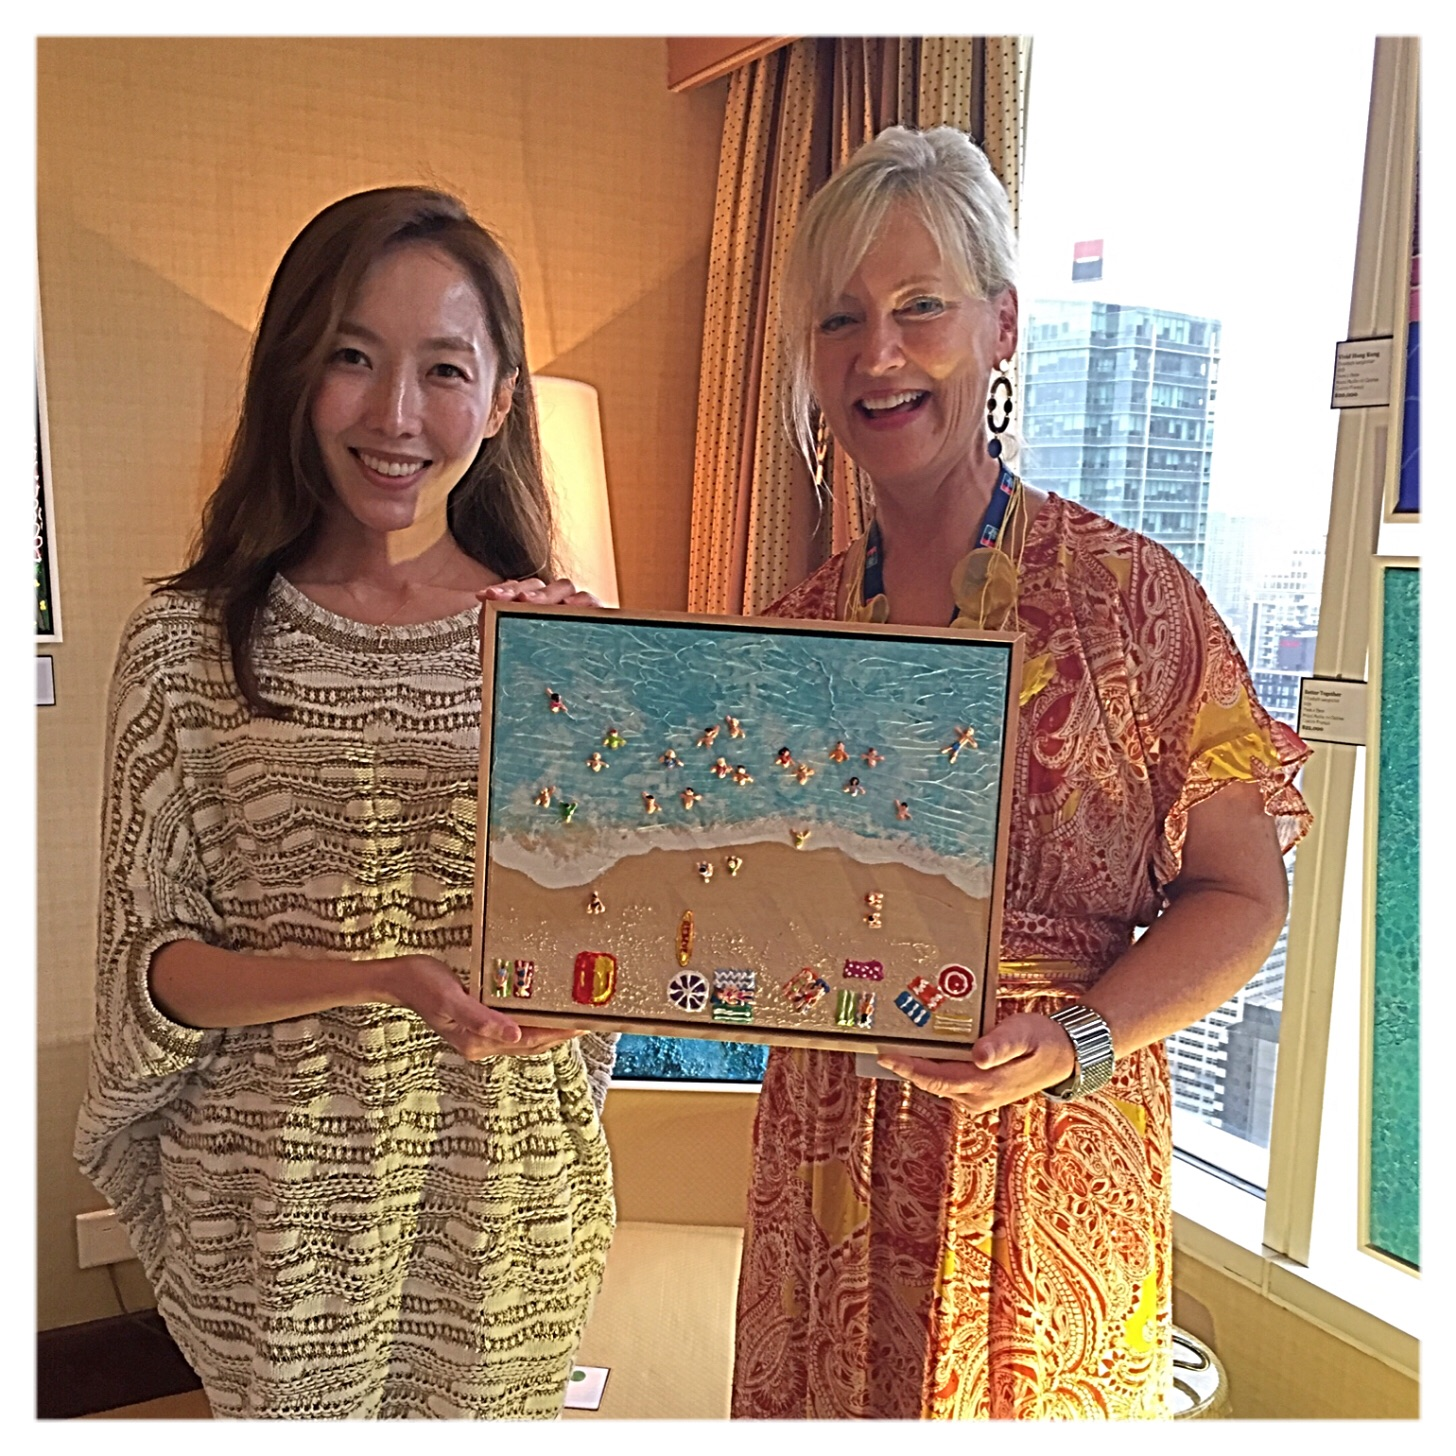 """CEO of NY Inspiration Kate Lee with her new painting """"Glamarama"""" SOLD at the Asia Contemporary Art Show"""